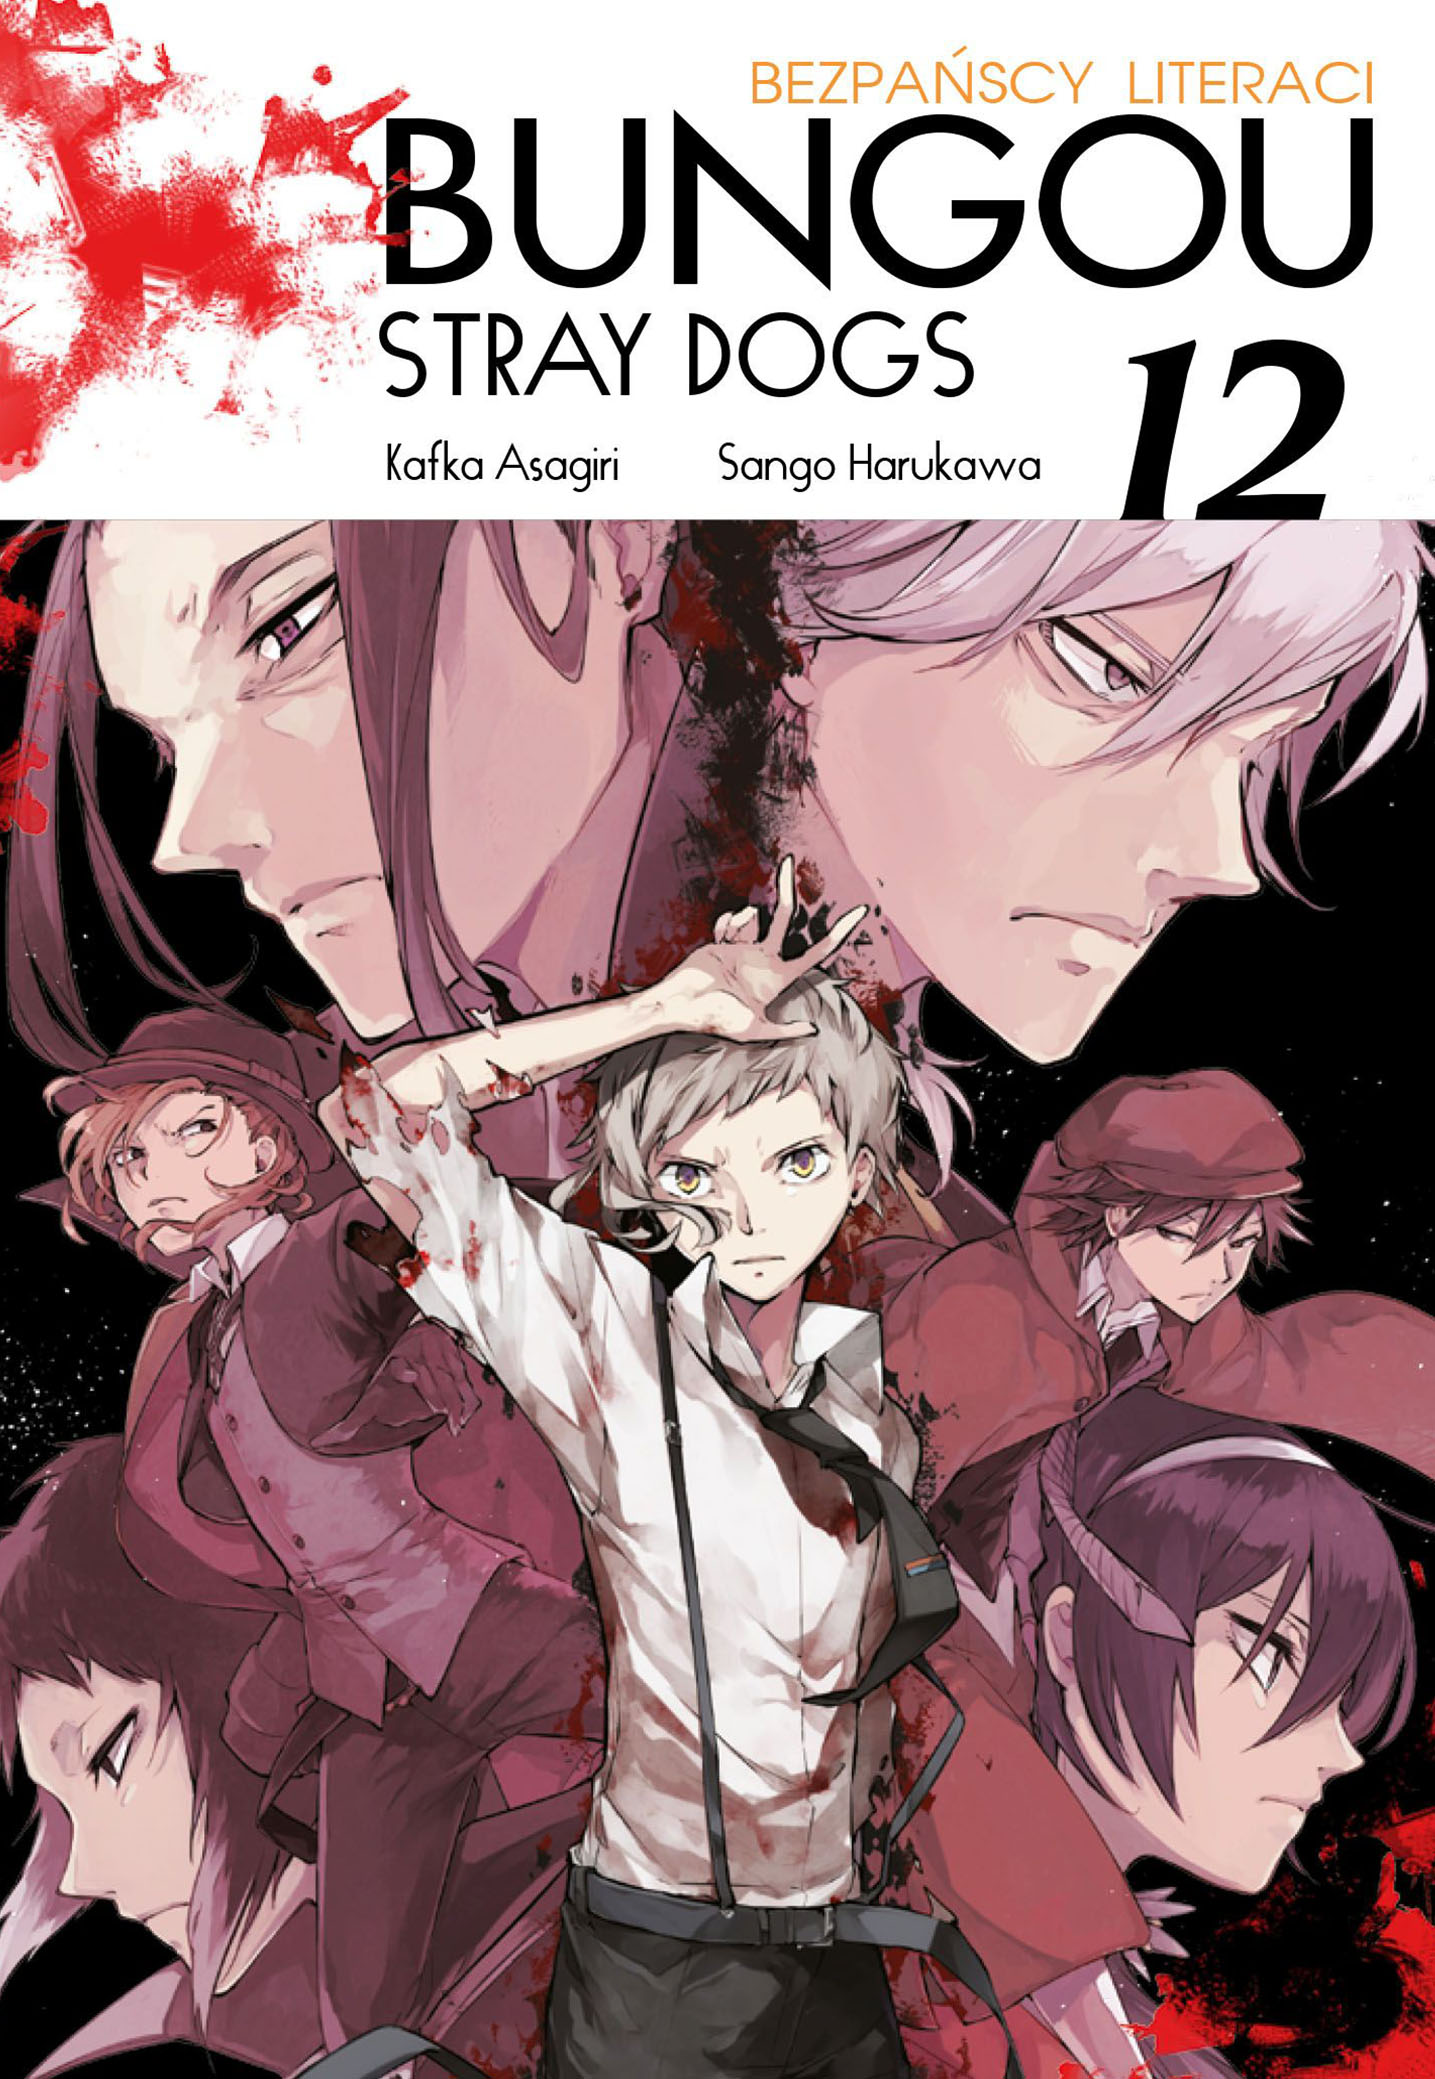 Bungou Stray Dogs - Bezpańscy Literaci - tom 12